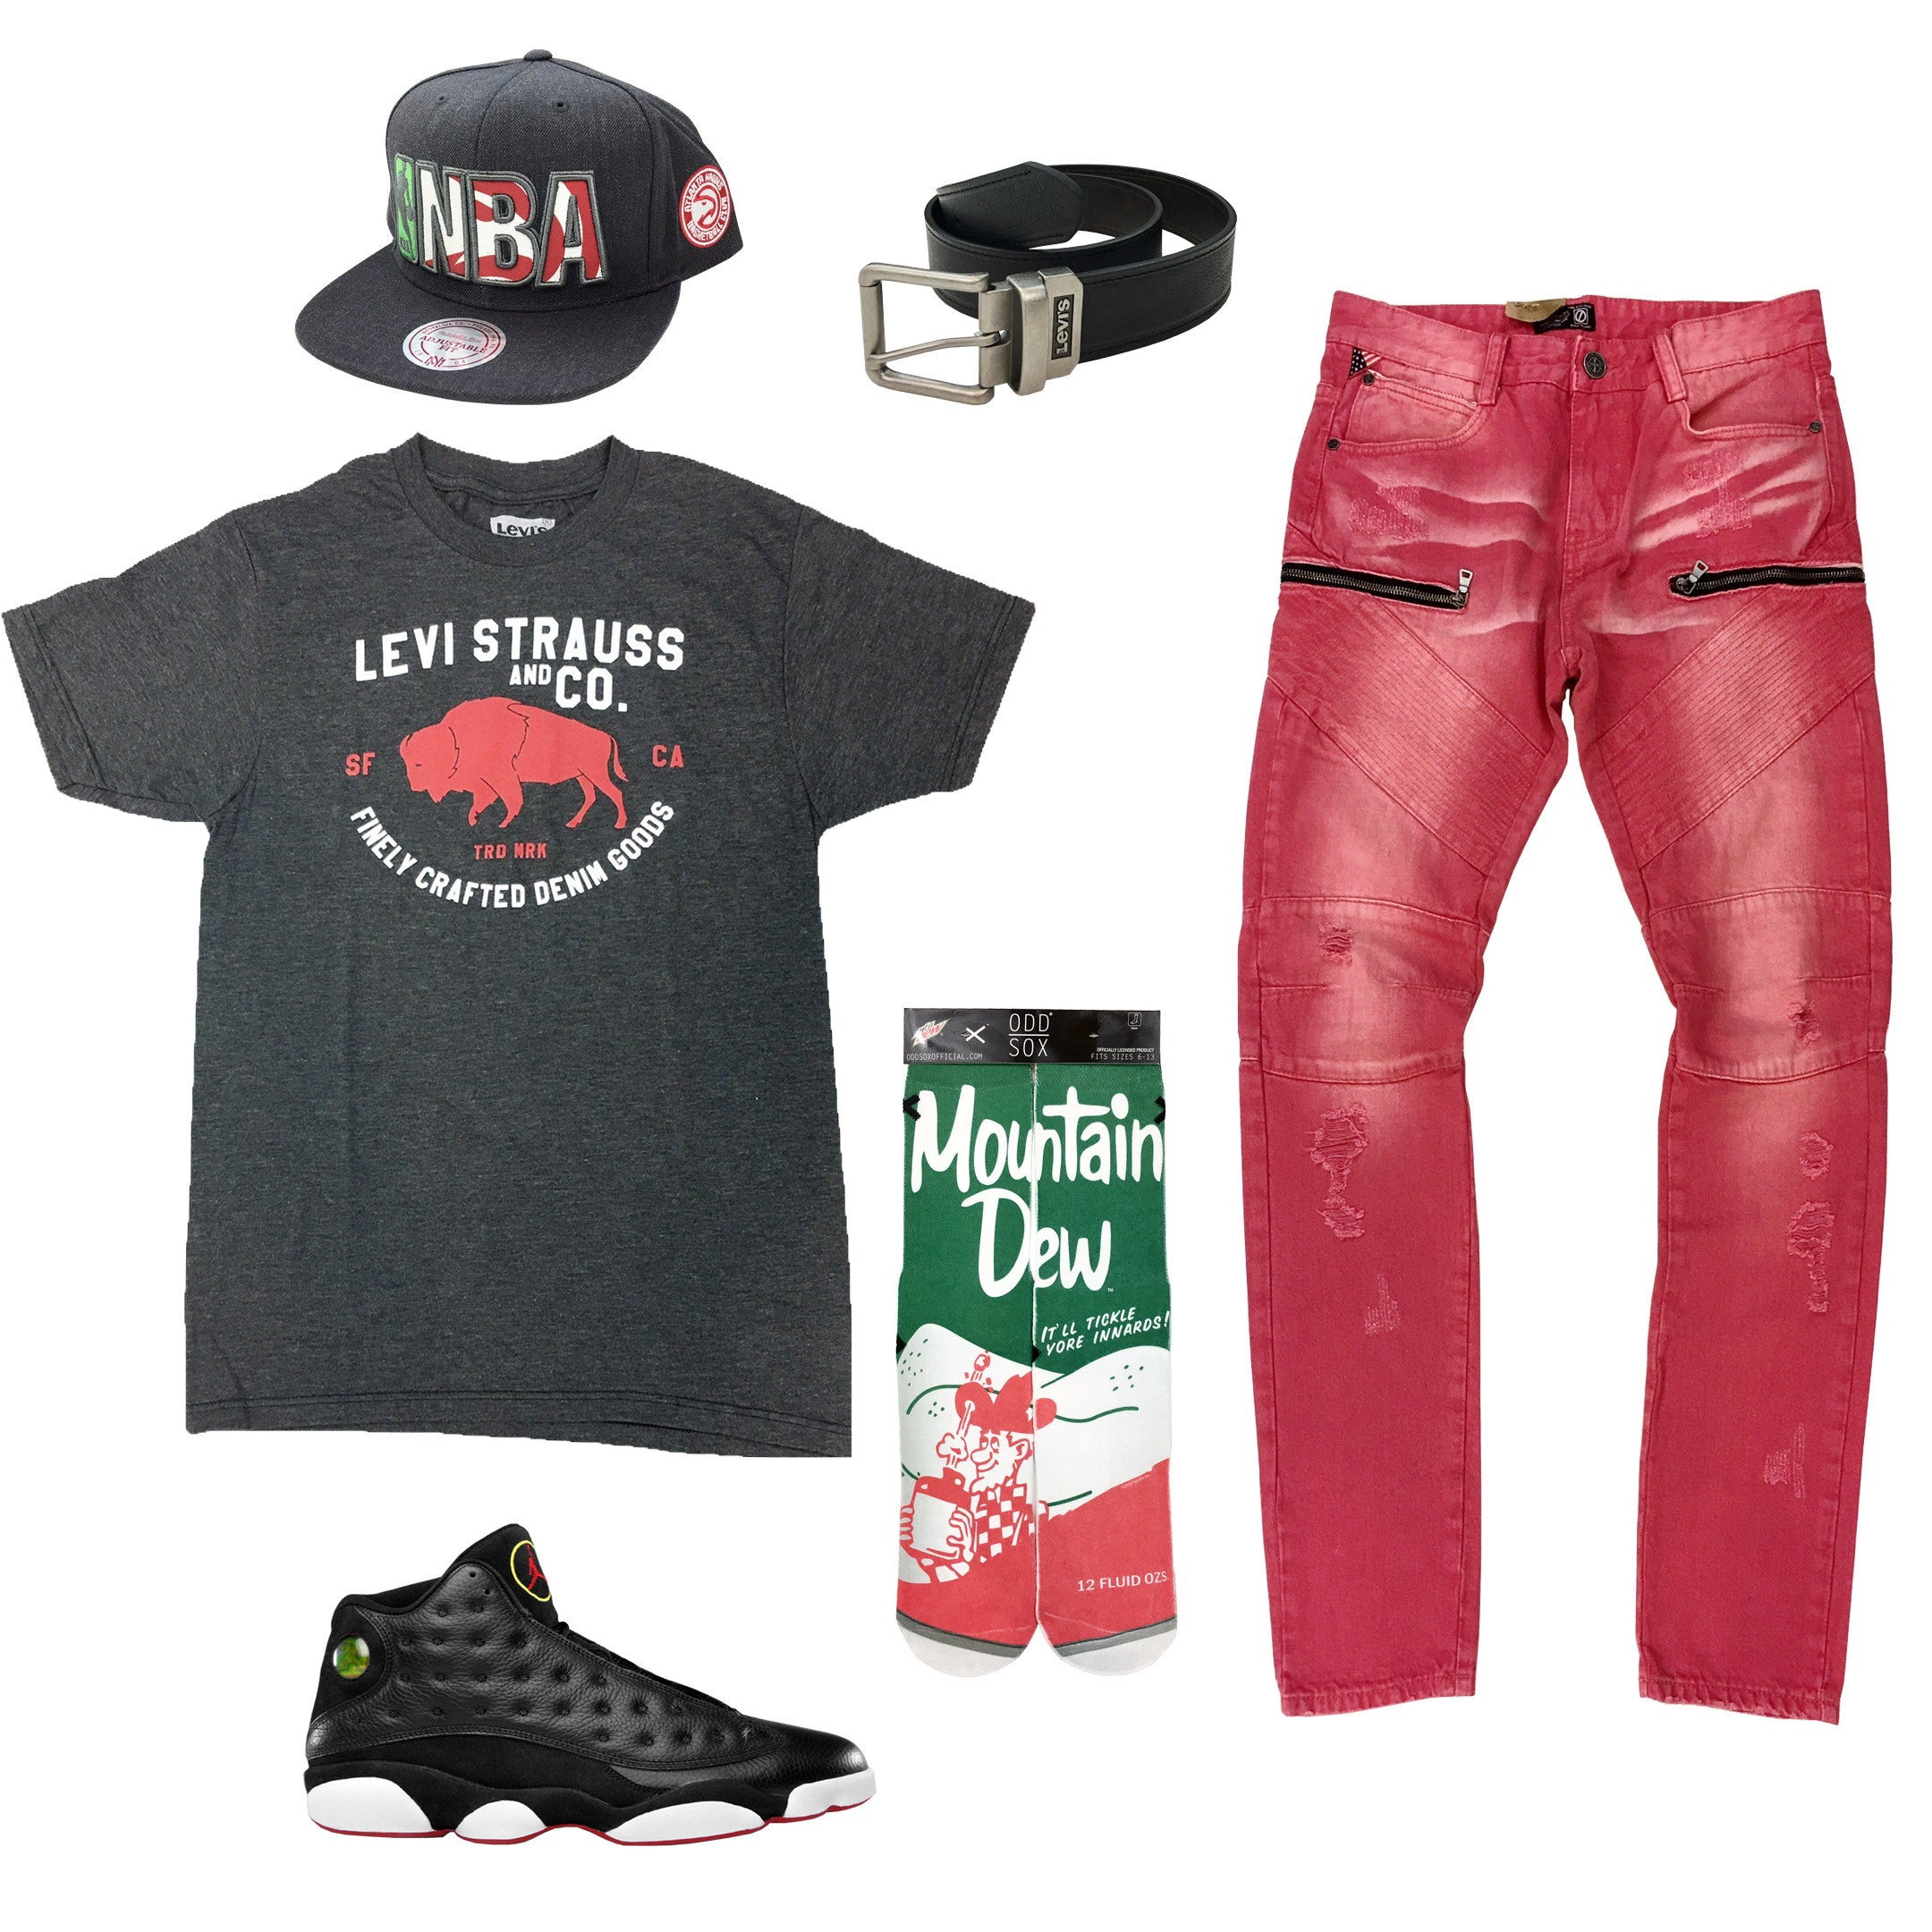 302960329ca1 Air Jordan 13 Playoff Outfit9.99 USDHat